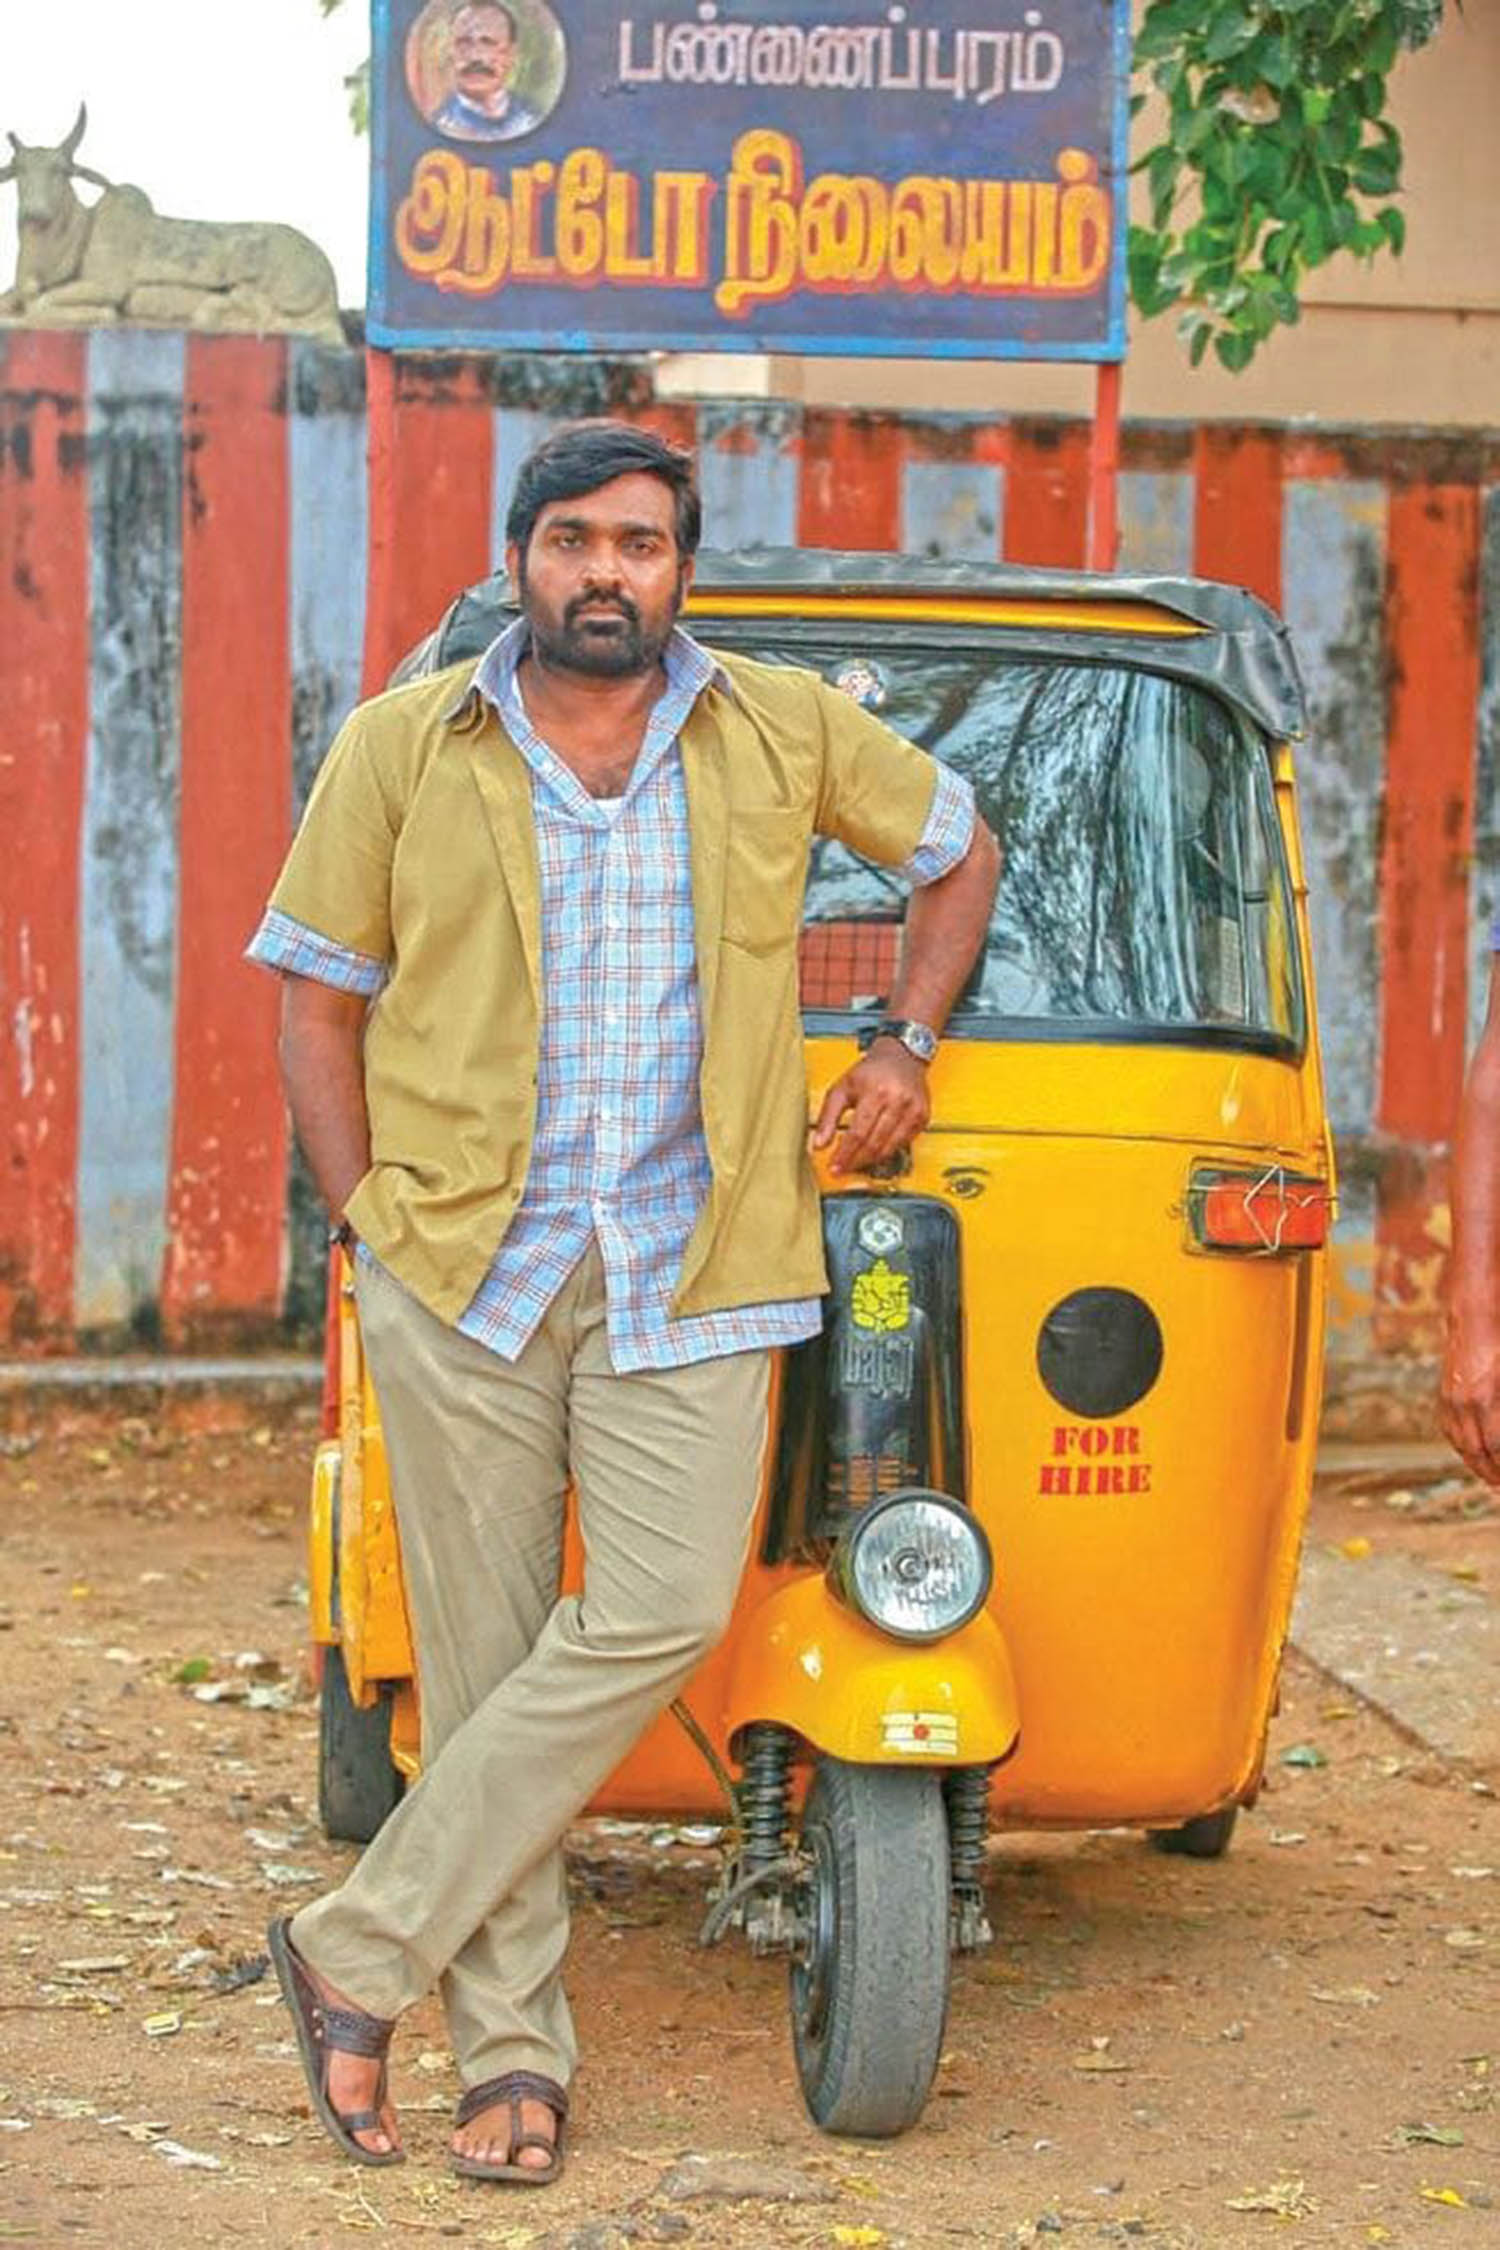 Maamanithan,Maamanithan movie stills,vijay sethupathi in Maamanithan,vijay sethupathi new movie stills,vijay sethupathi Gayathrie Maamanithan movie stills,vijay sethupathi and  Gayathrie in Maamanithan